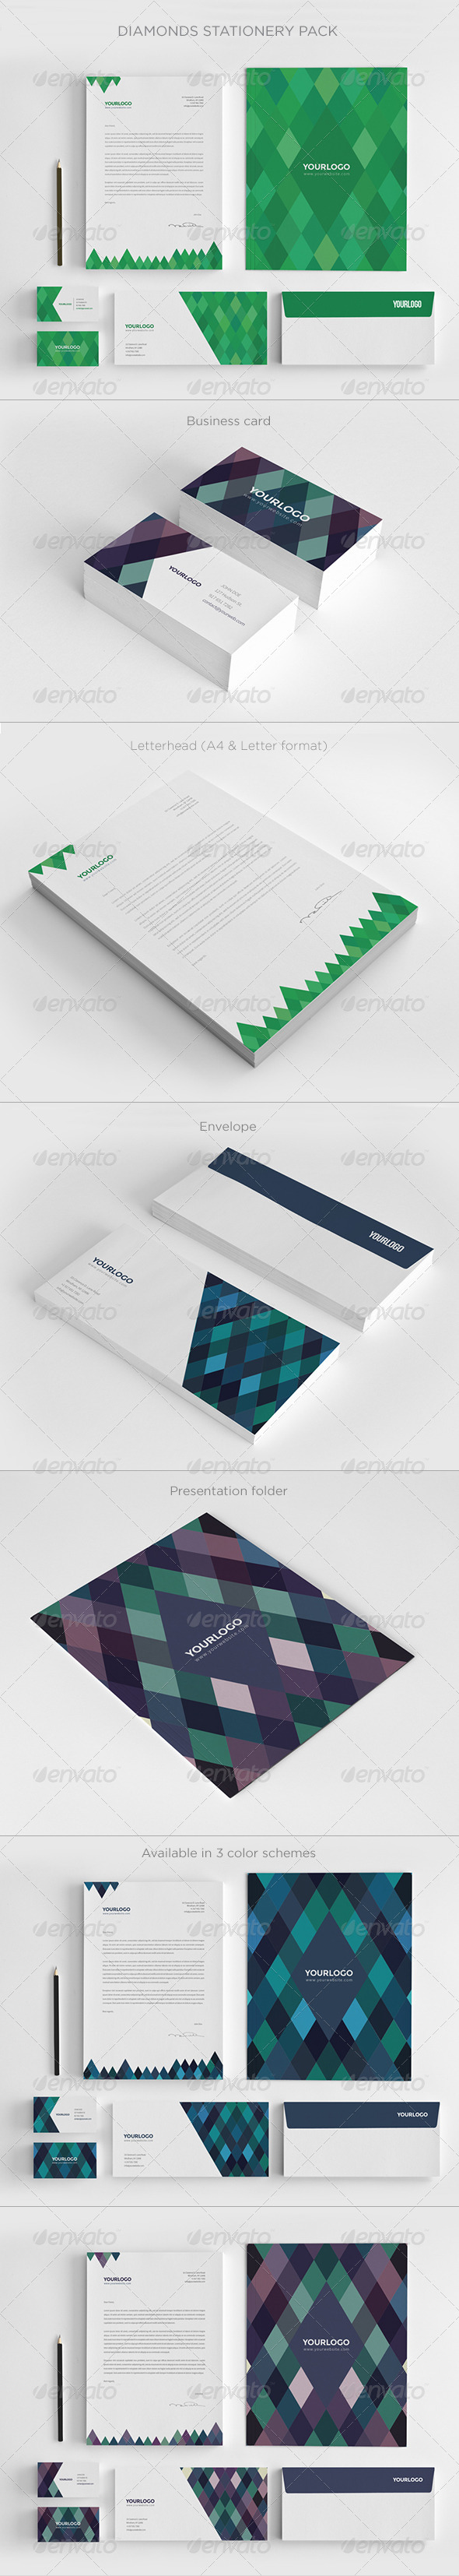 Diamonds Stationery Pack - Stationery Print Templates